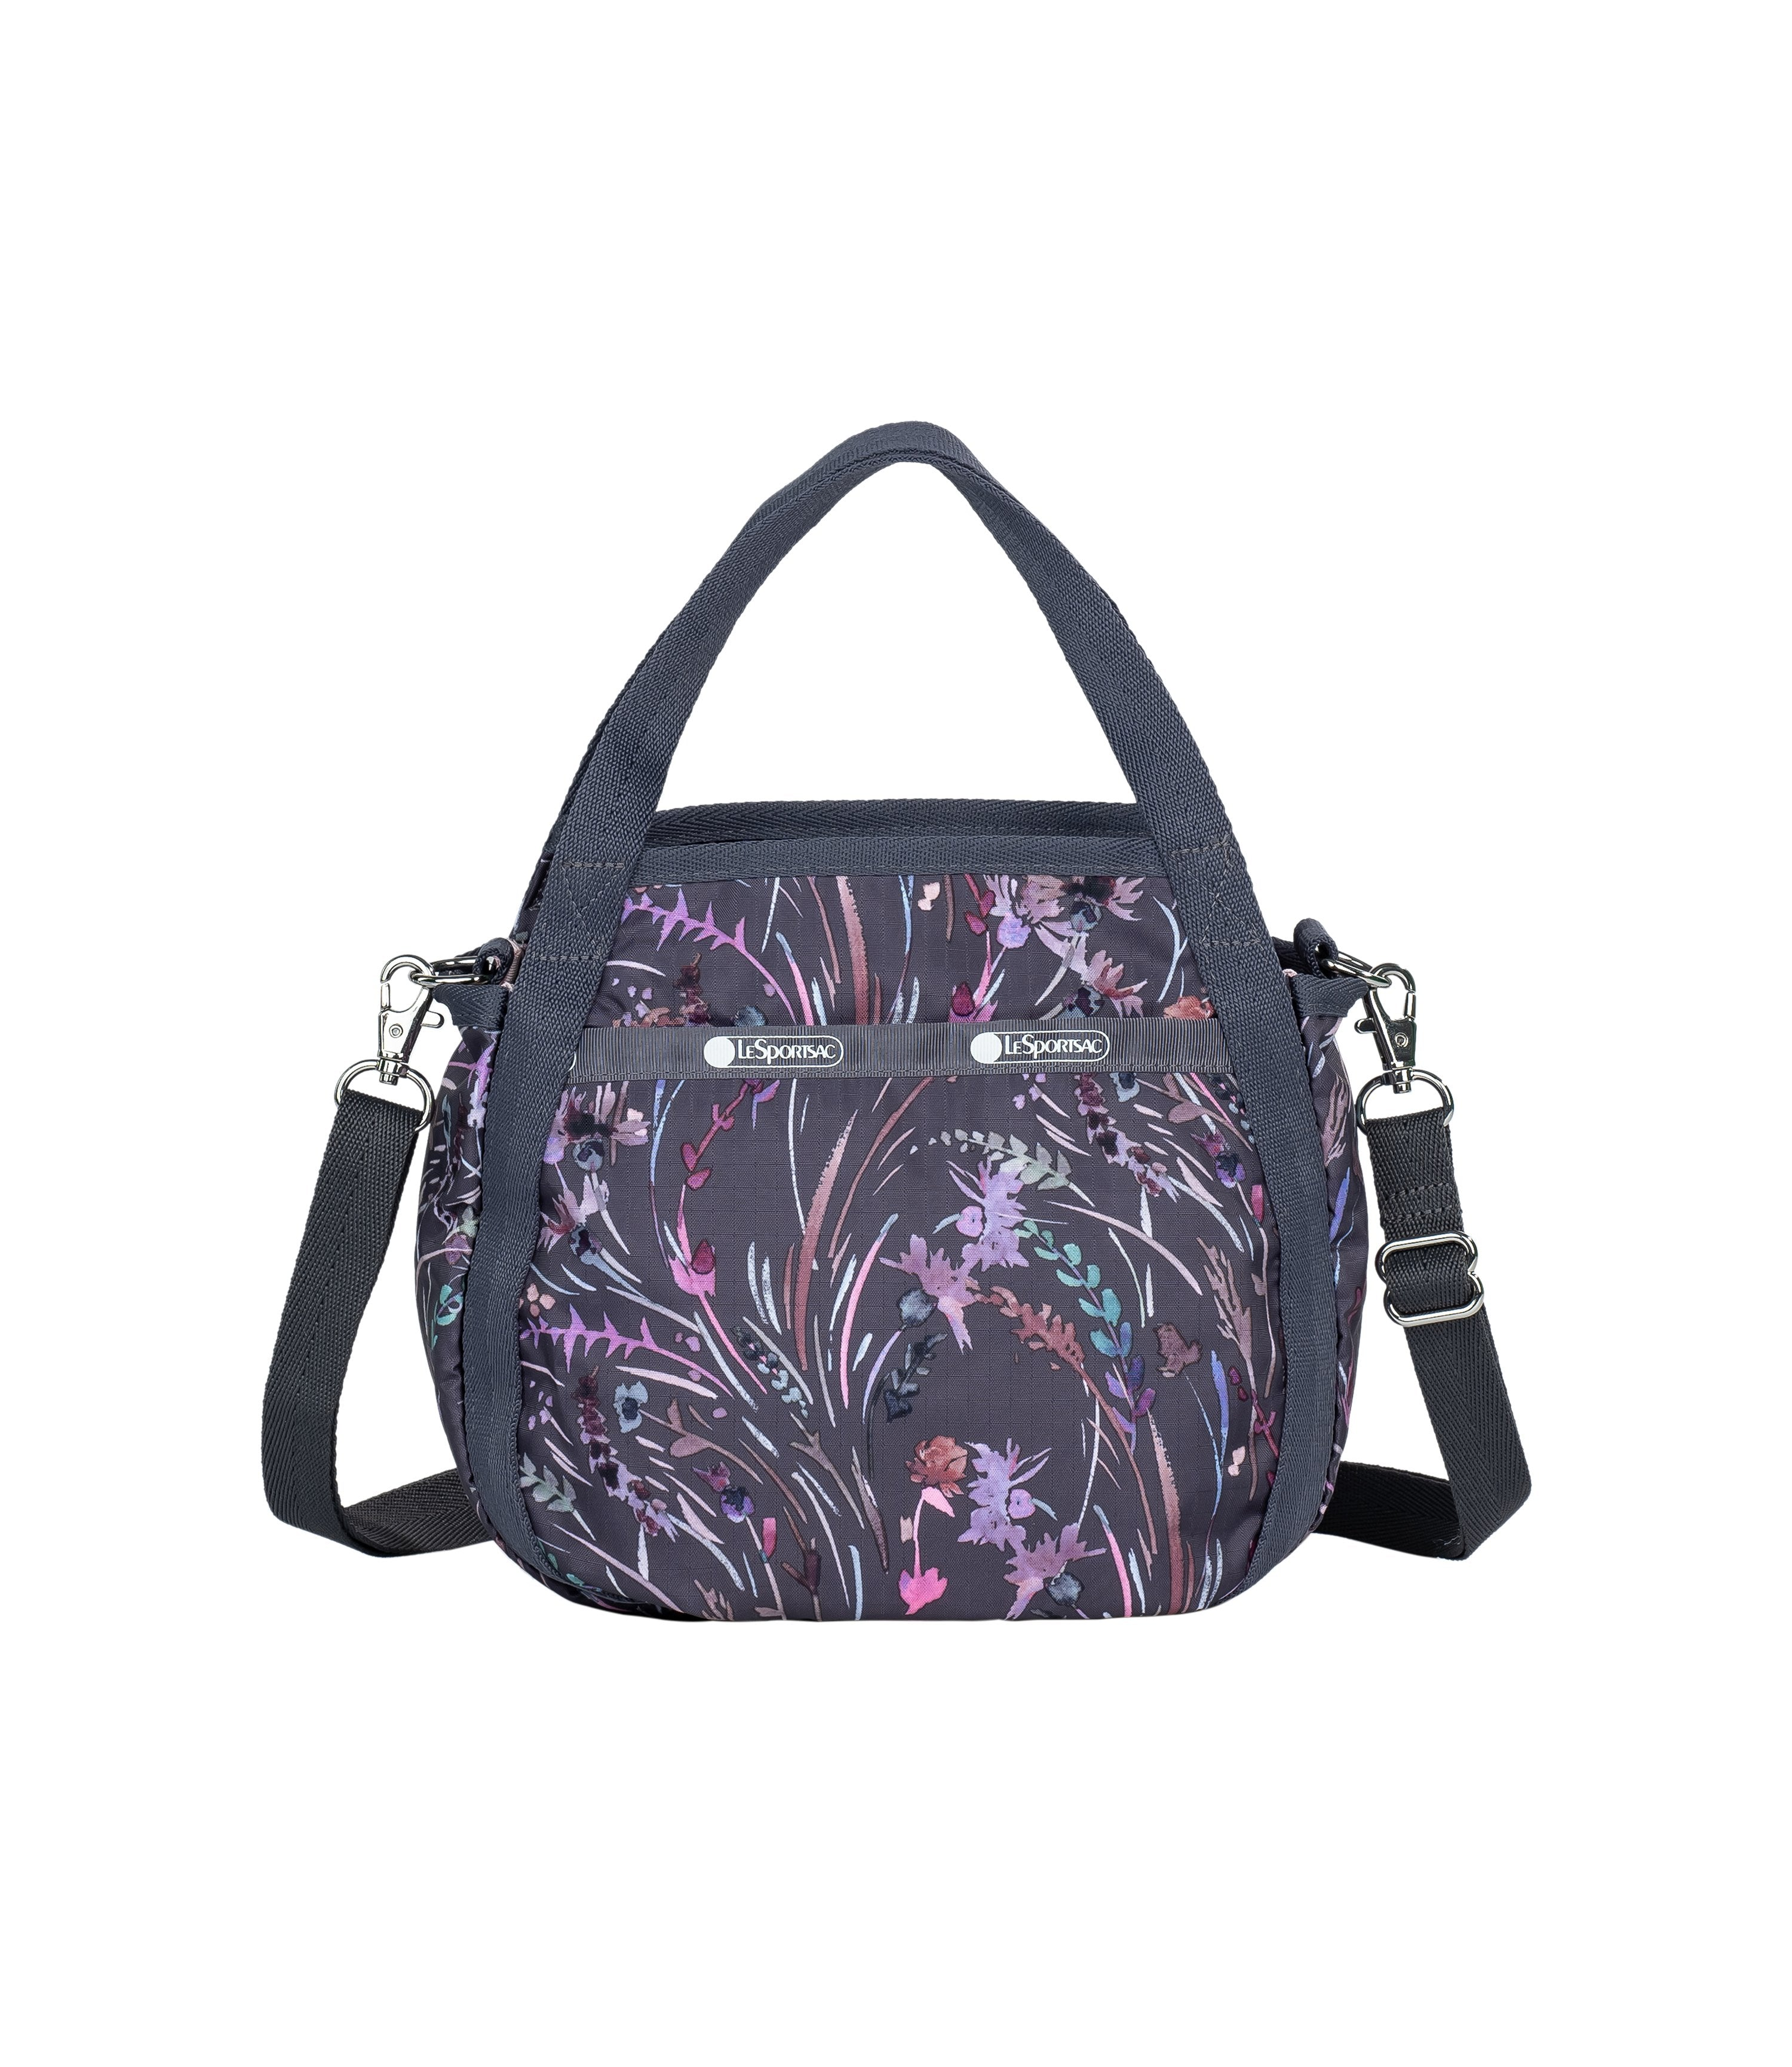 LeSportsac - Handbags - Small Jenni Crossbody - Windswept Floral Shadow print